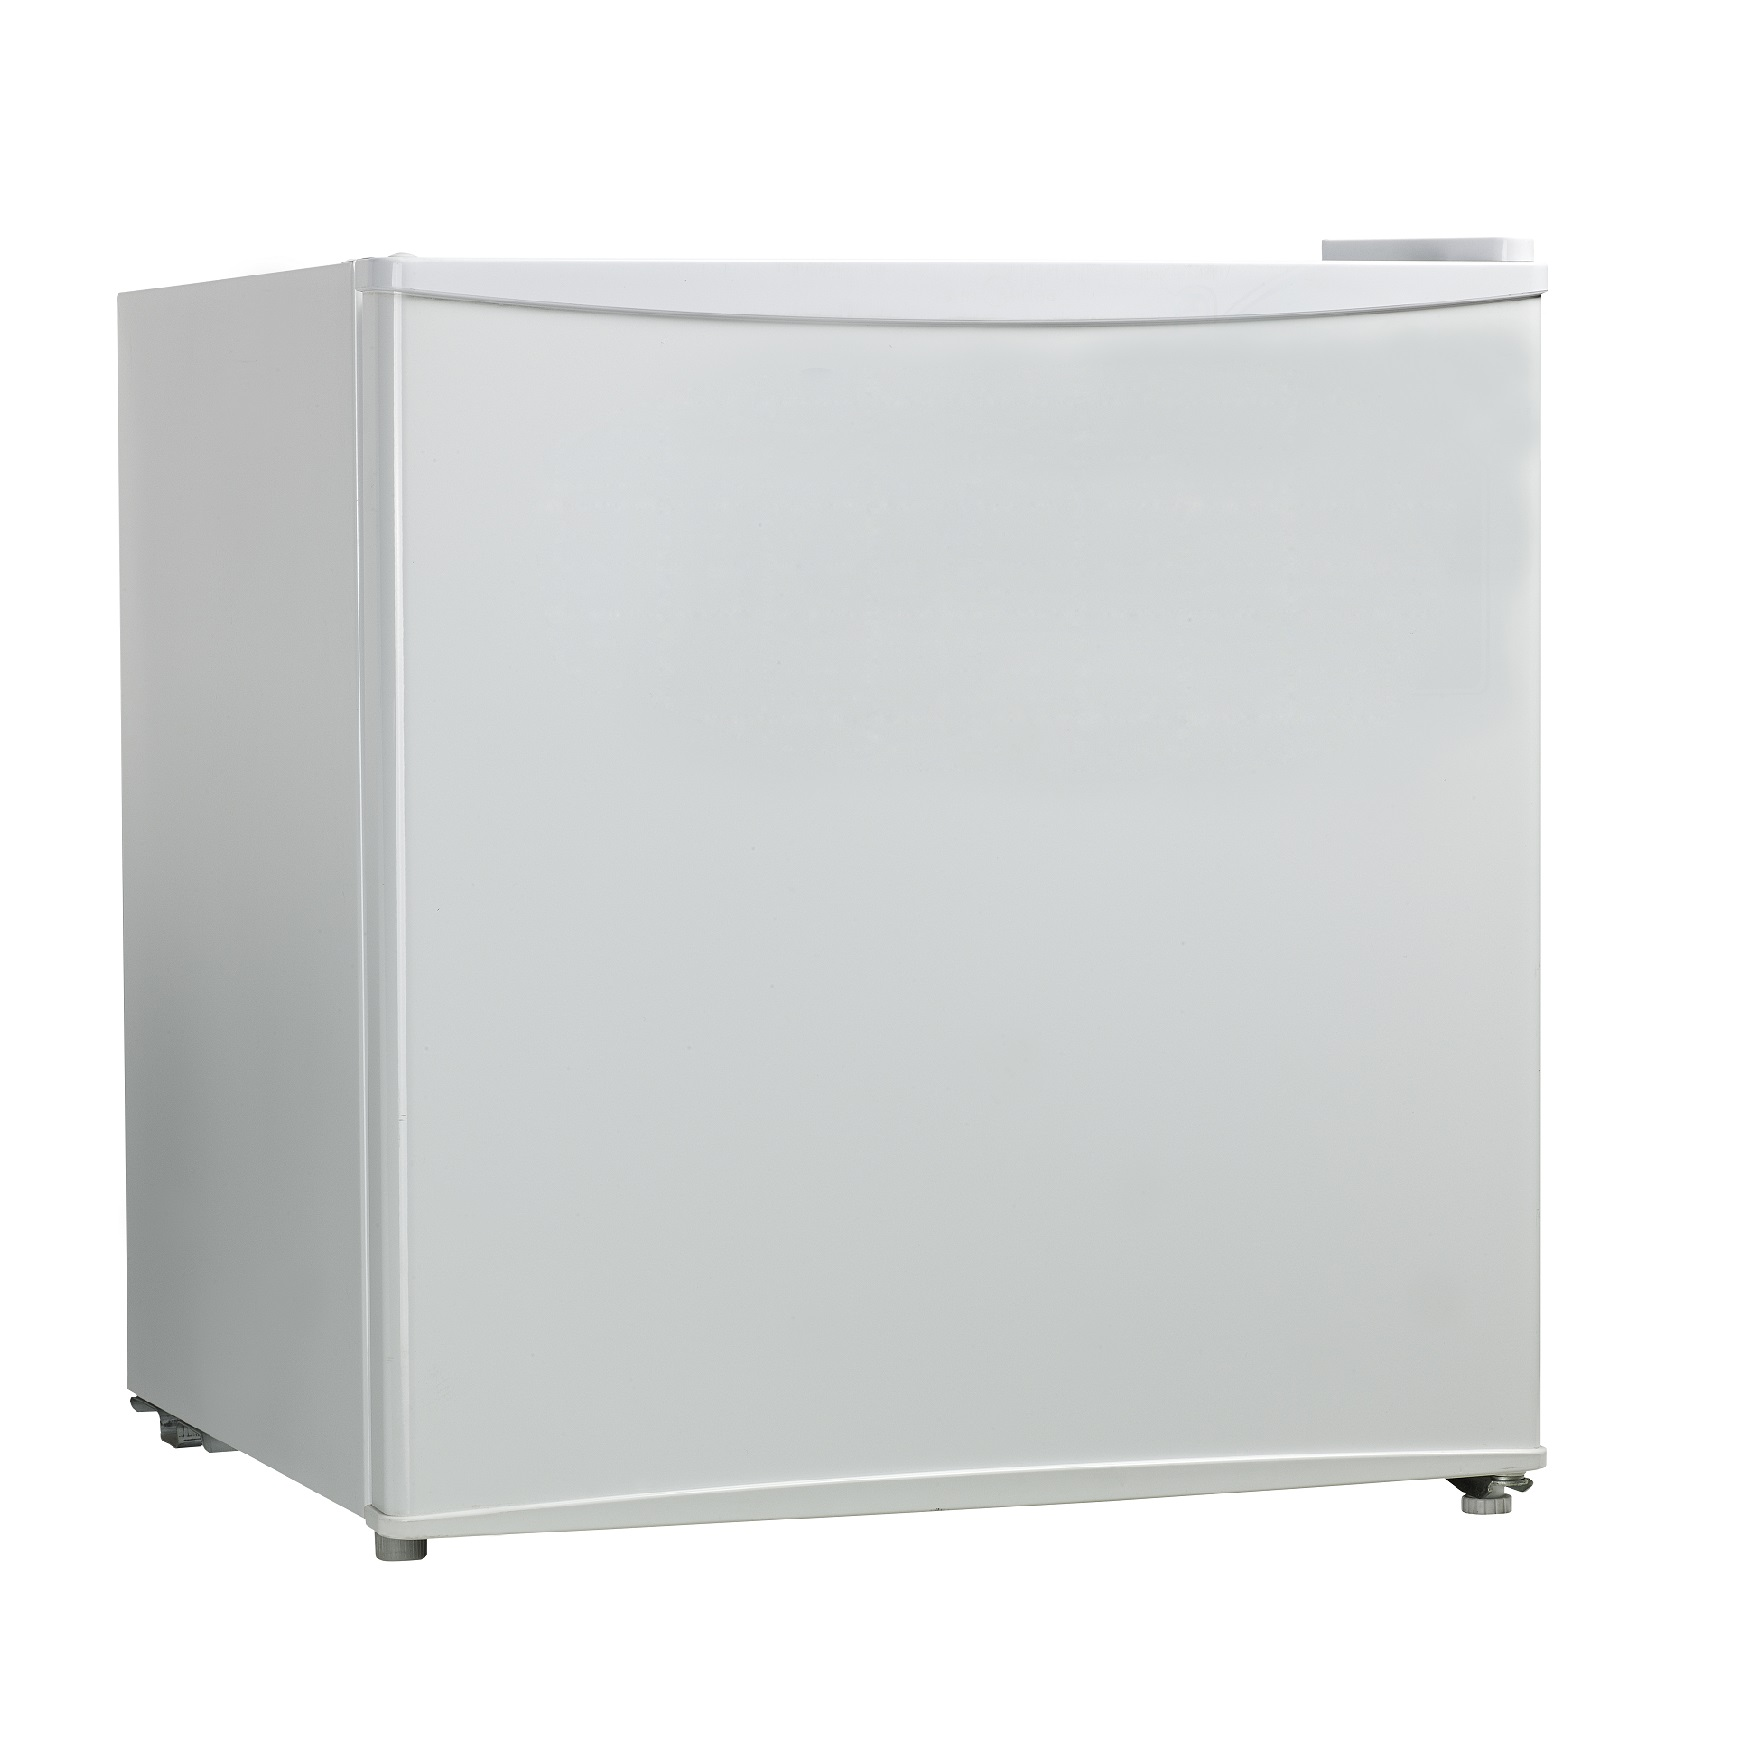 1.6CF Compact Refrigerator White